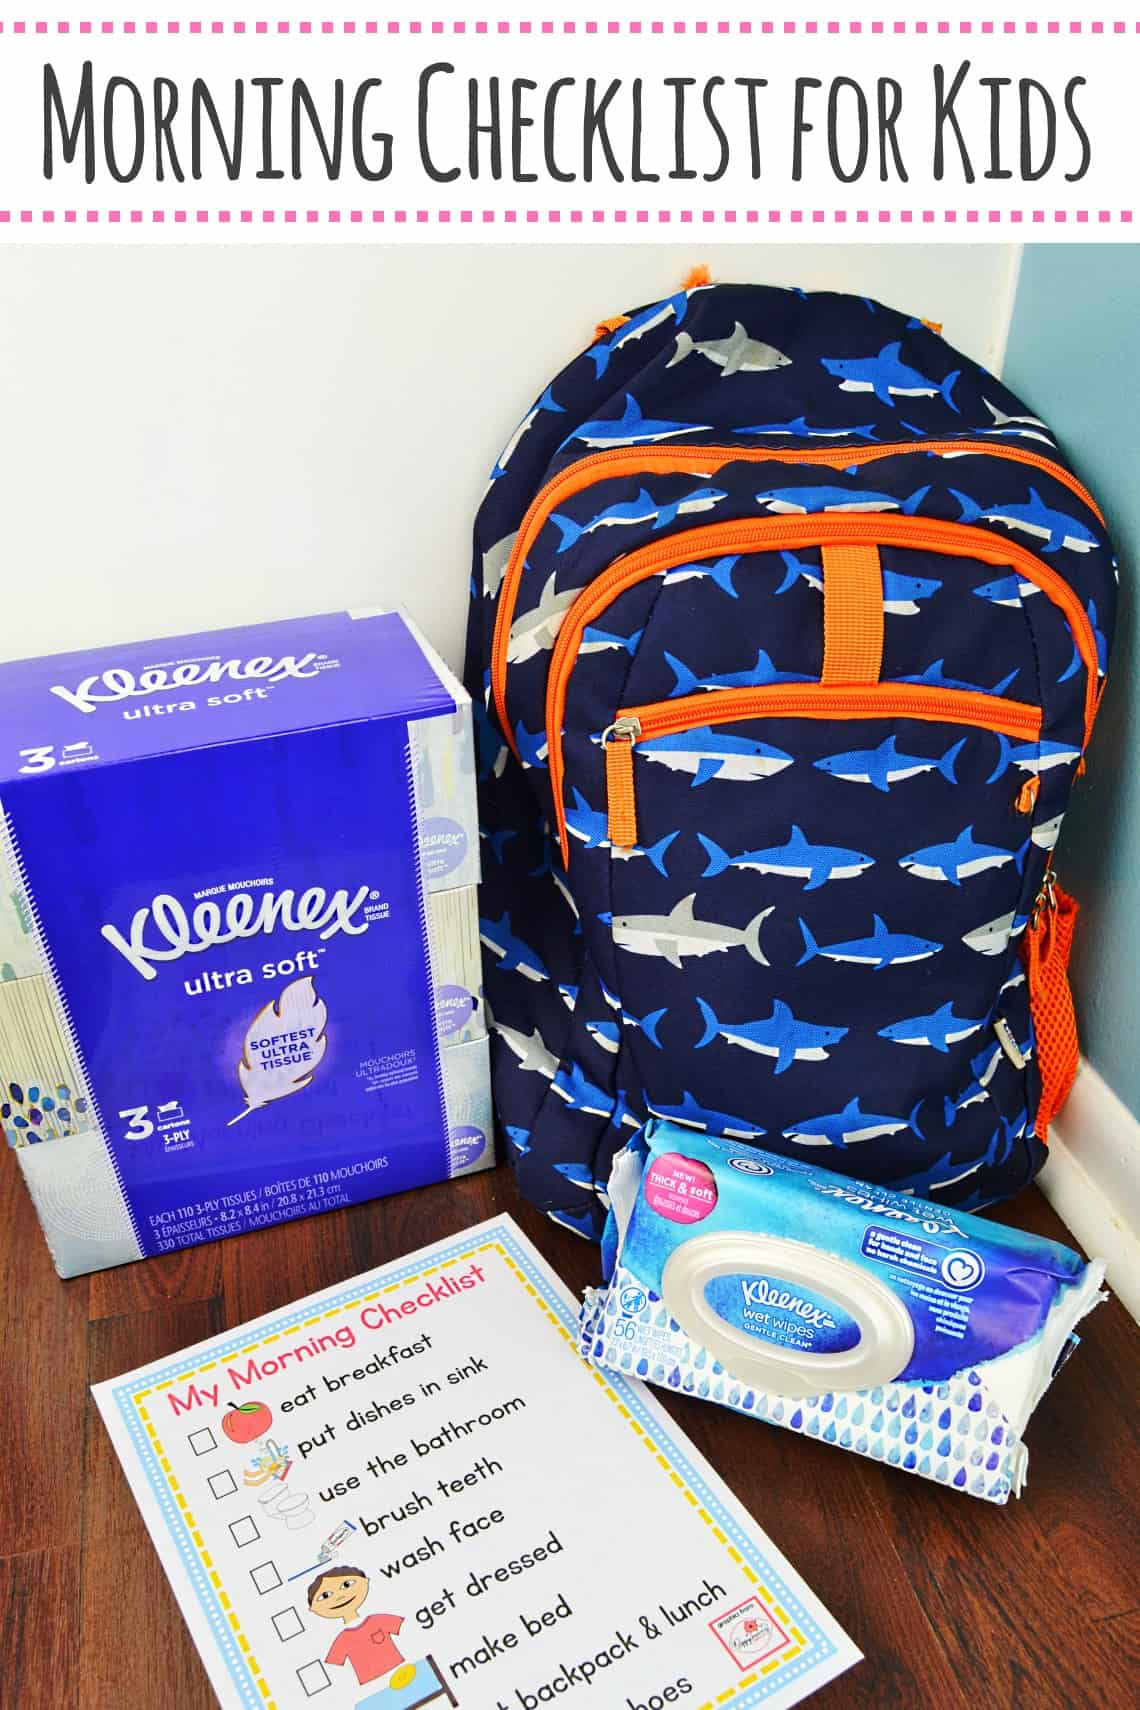 Morning Checklist for Kids- Use this free printable checklist with pictures that enables kids to get ready more independently on busy school mornings. #morningchecklistforkids #SchoolReadyWithKleenex @Dial @Walmart #AD